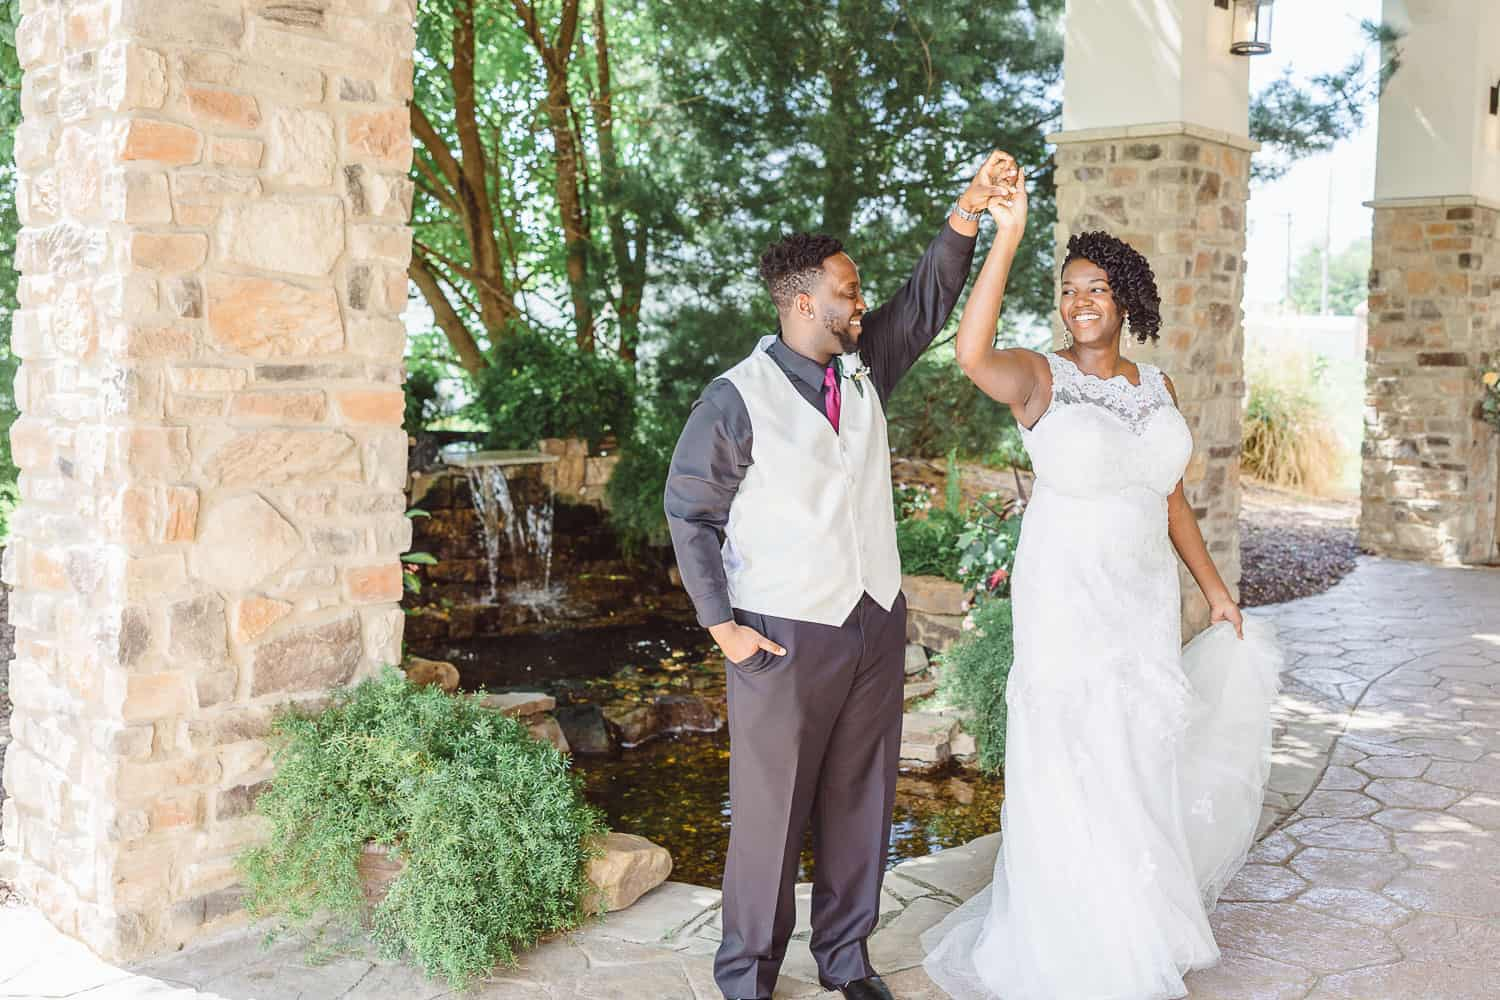 The Rhapsody wedding venue in Independence bride and groom portraits